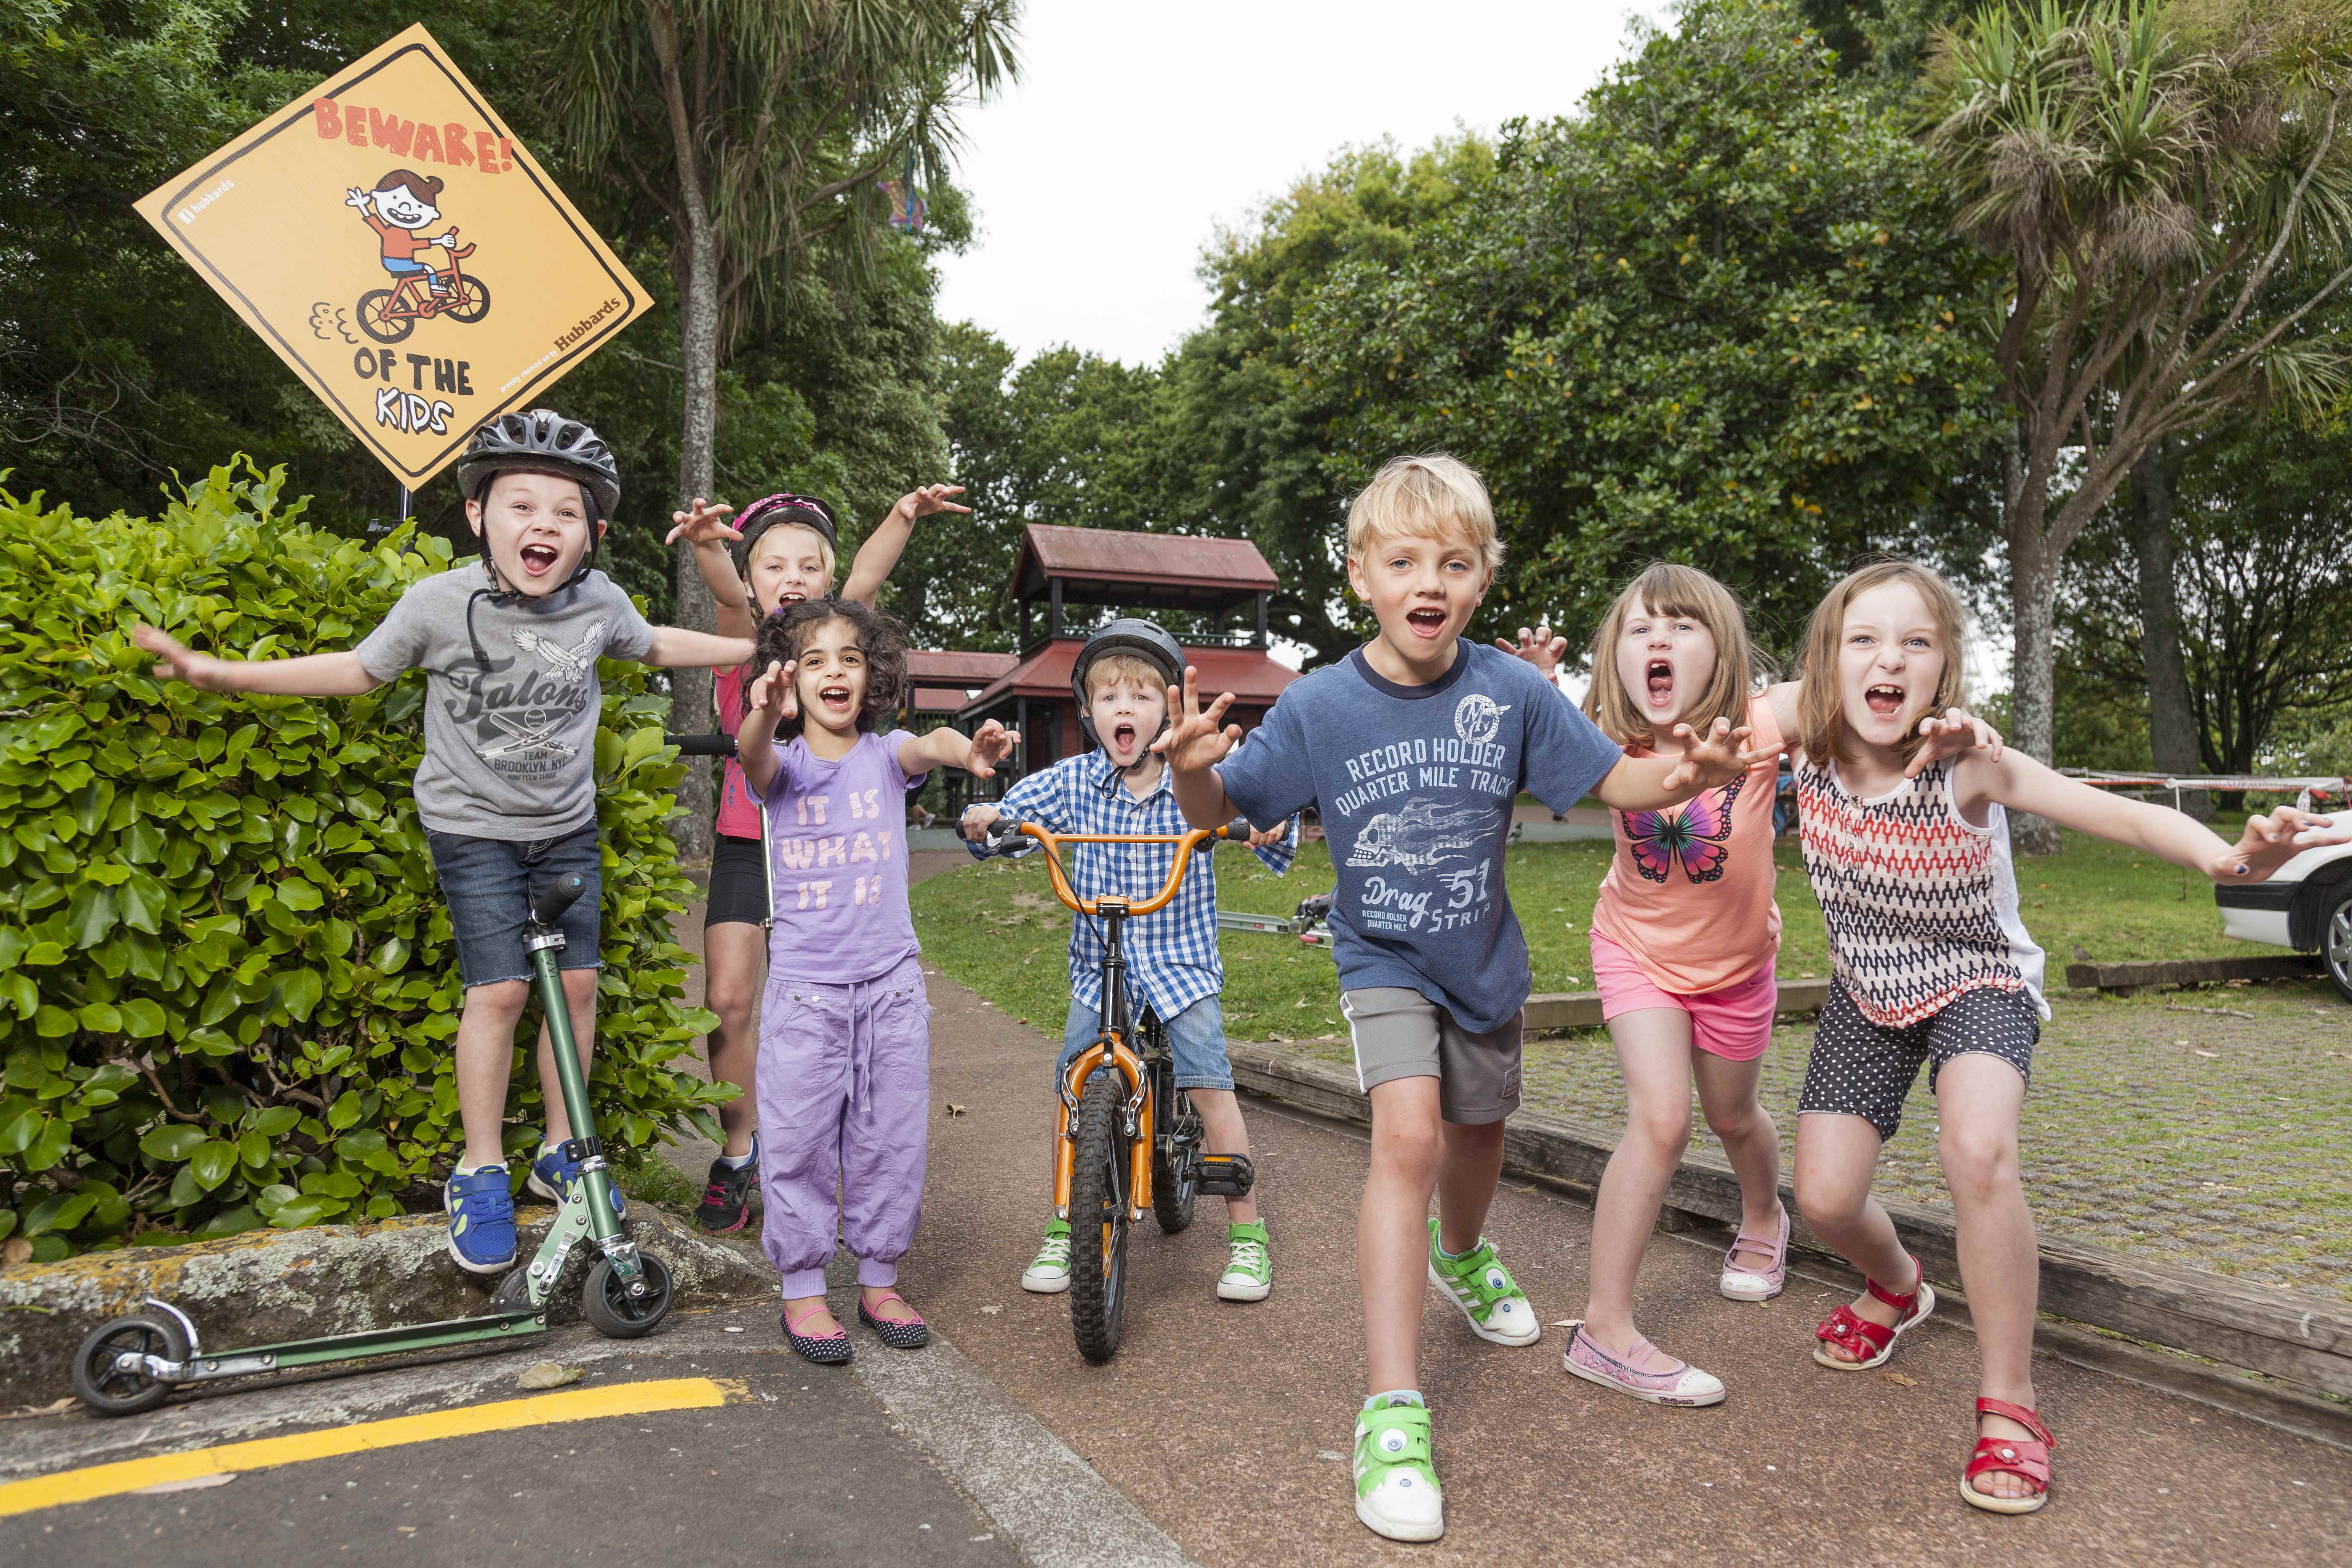 Kidspot New Zealand.. is all about simplifying the search for kid related fun, activites, sports, and related trappings. It makes it fast and easy for kids and their parents to identify things and places of interest leaving more time for all to enjoy!